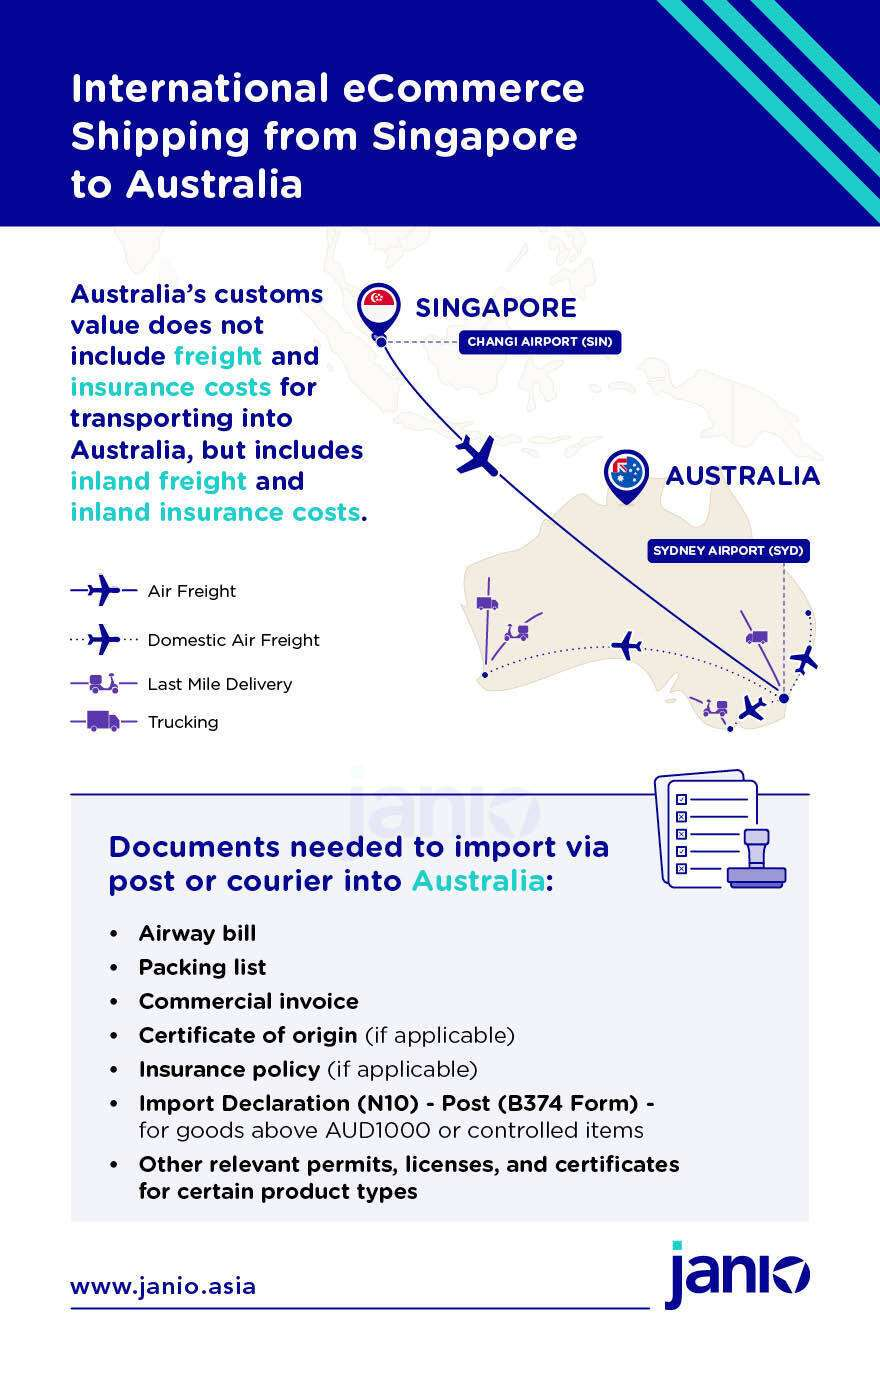 Infographic showing how parcels enter Sydney Airport, Australia from Singapore